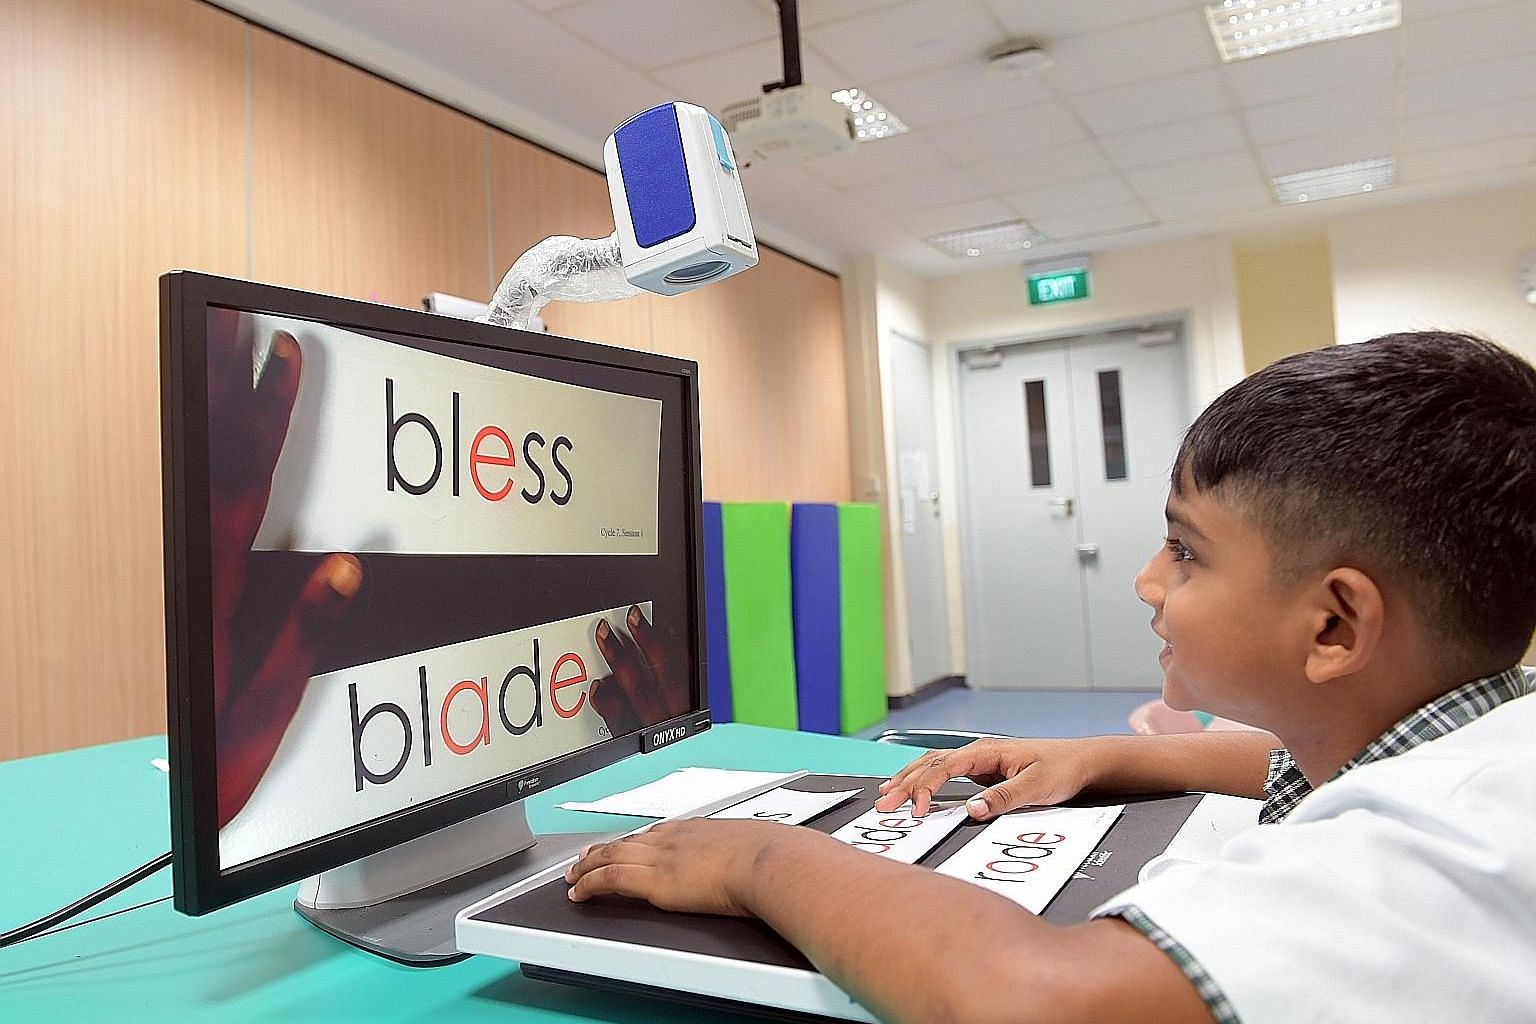 Tejas Mahendran, seven, who has low vision due to cone-rod dystrophy, uses a portable video magnification system that enlarges words on the class whiteboard and materials like worksheets to help him read.